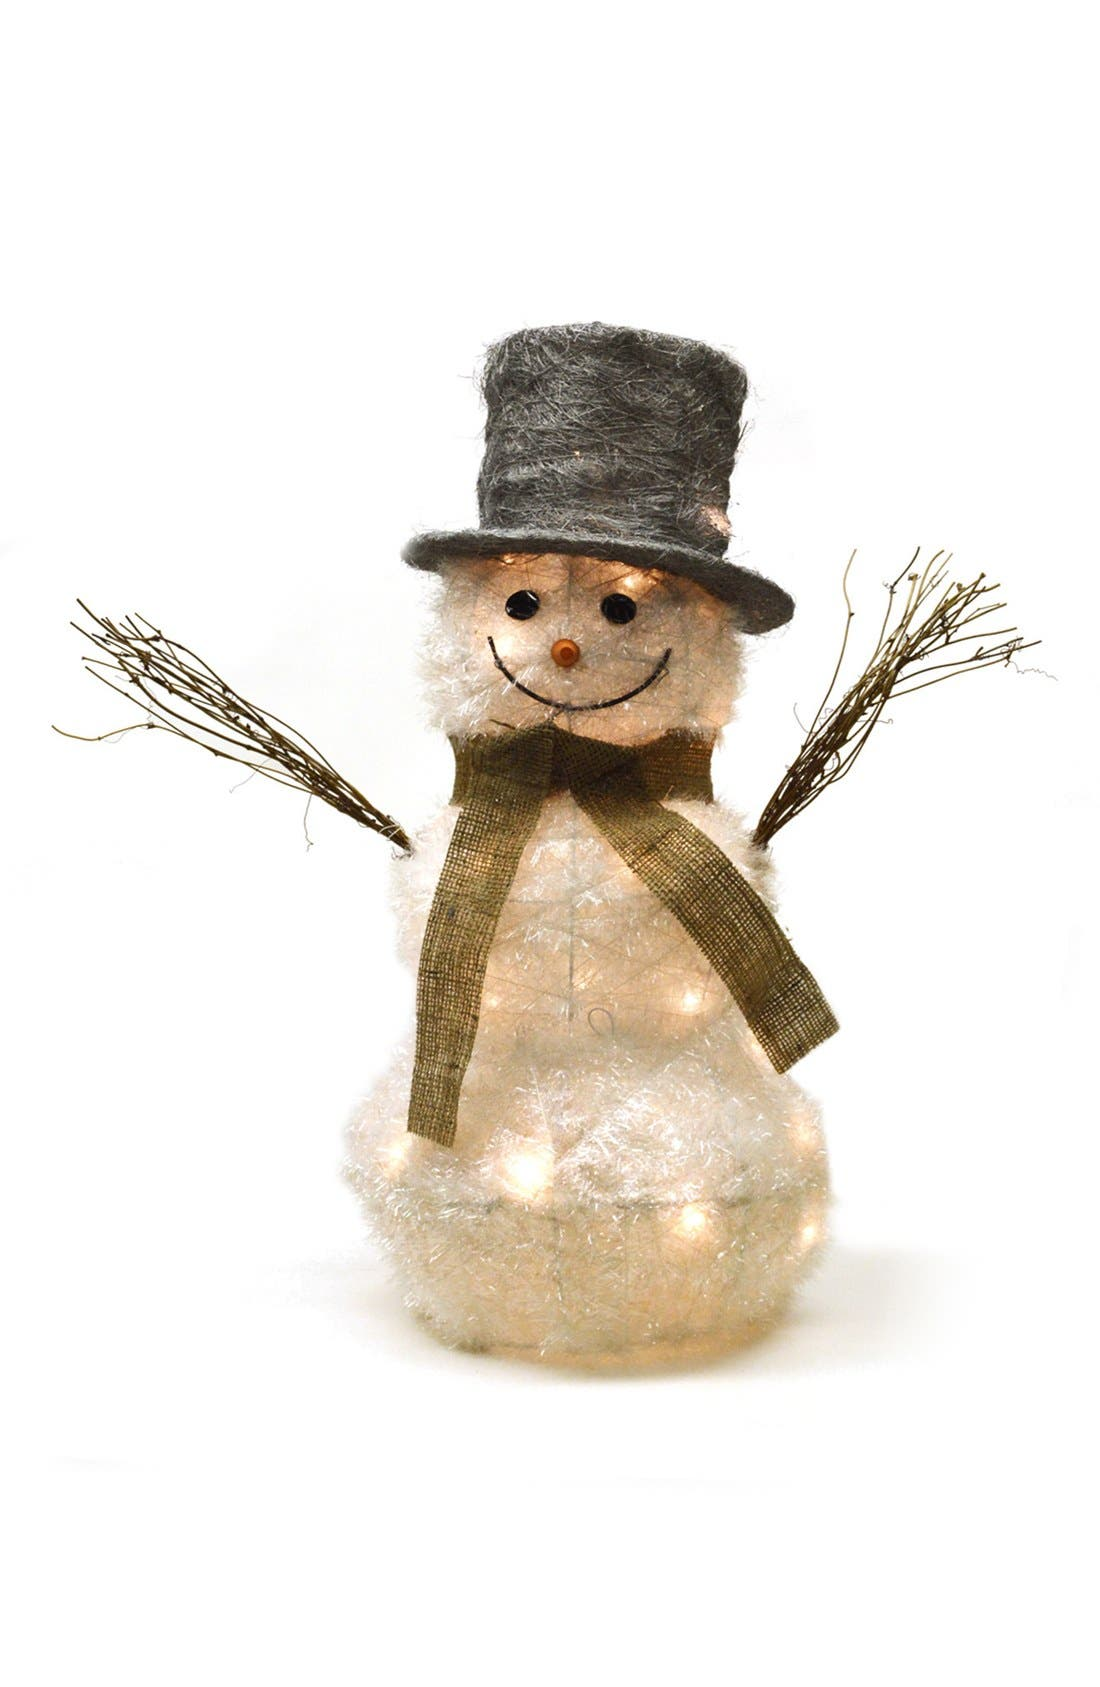 Alternate Image 1 Selected - Shea's Wildflower 'Frosty - Ready For Winter' Lighted Snowman Figurine